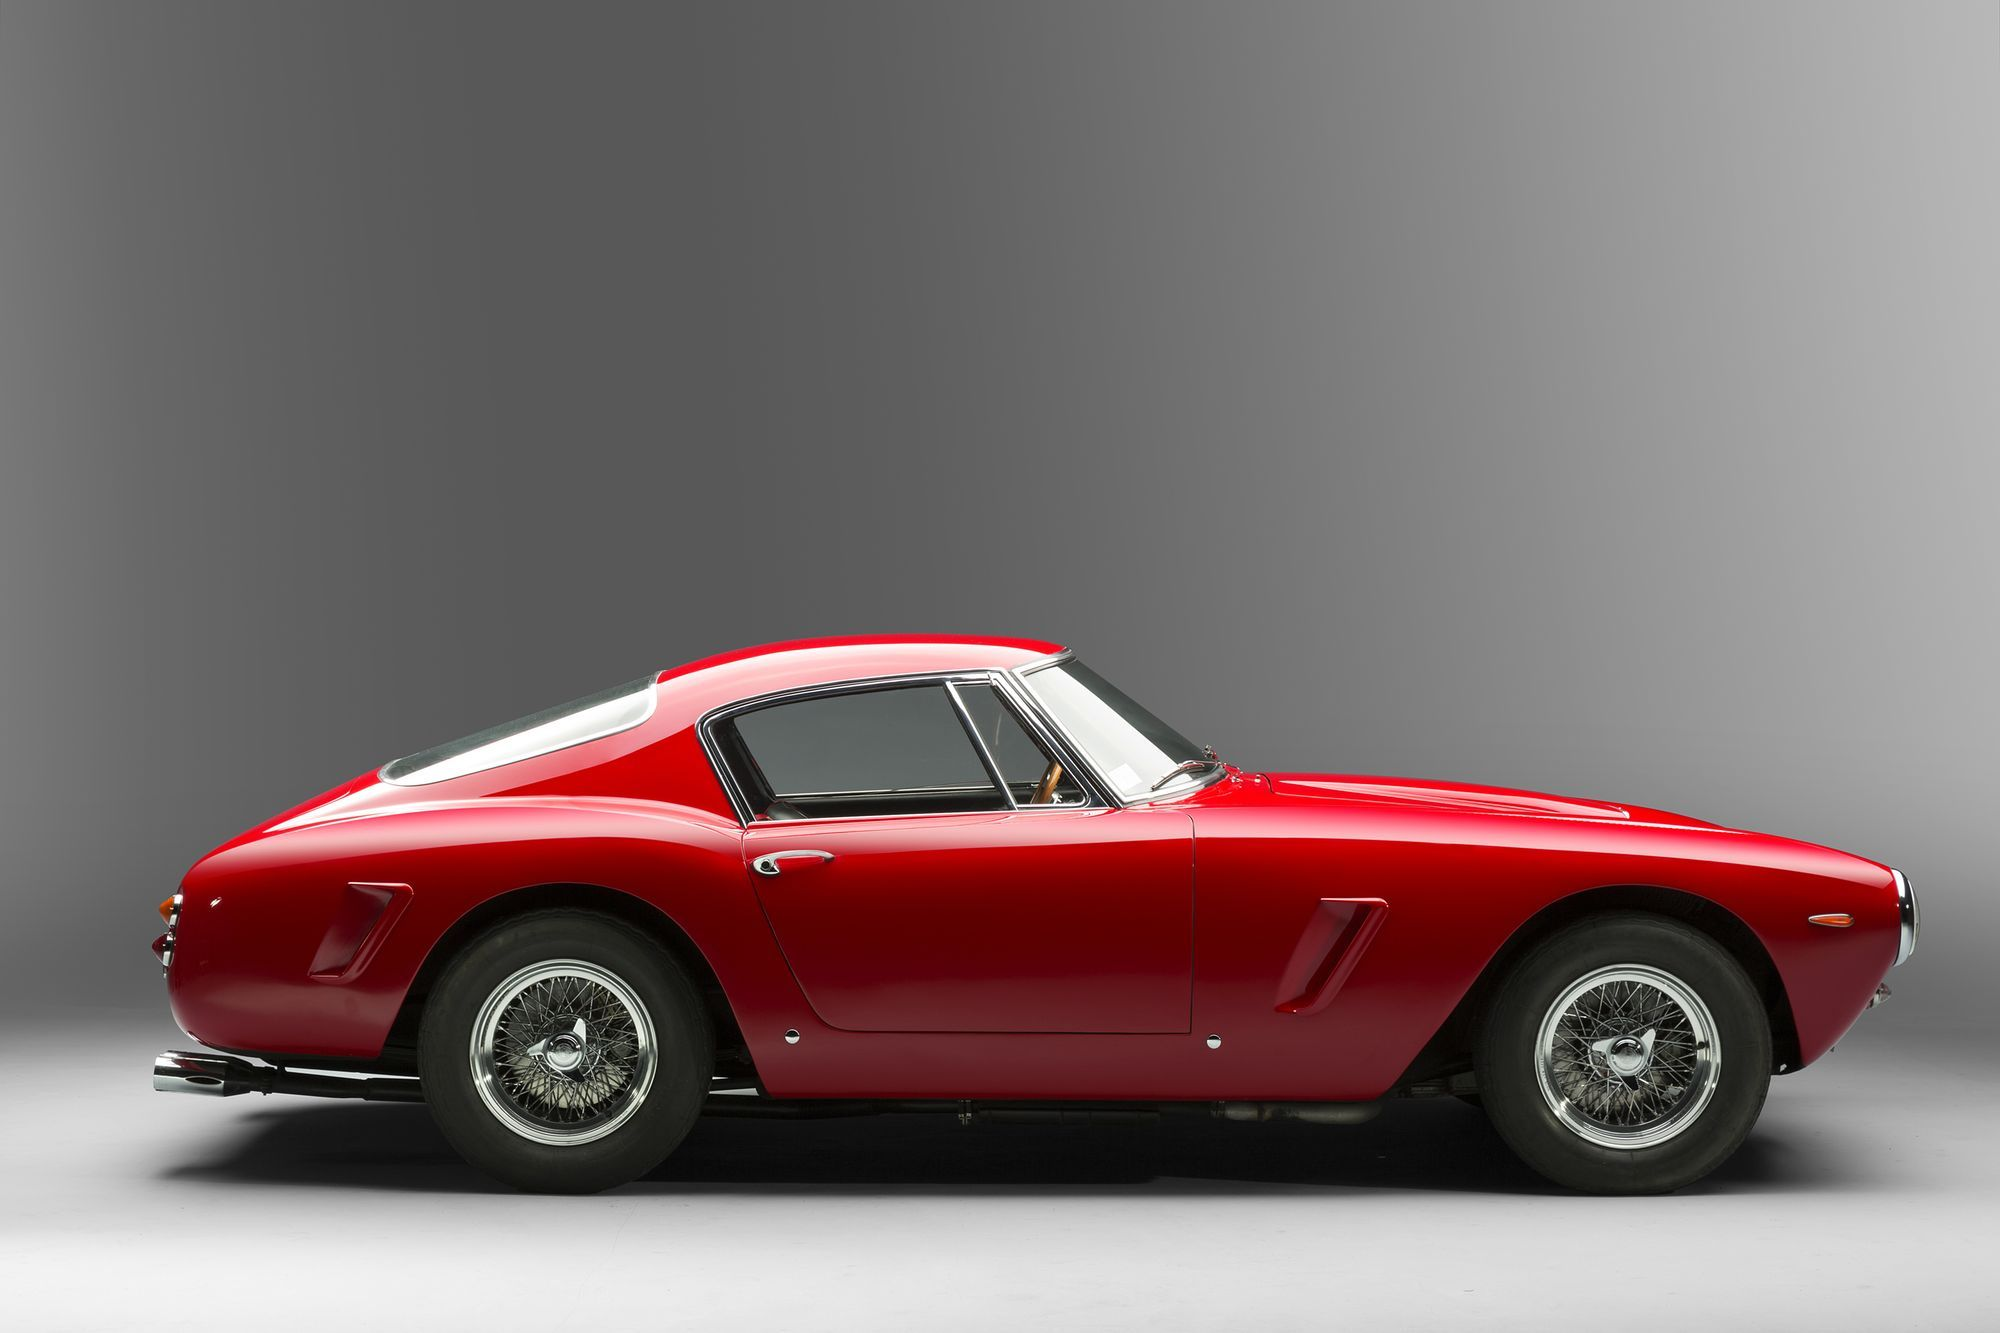 Is This 250 Gt Swb Berlinetta The Vintage Ferrari Of Your Dreams